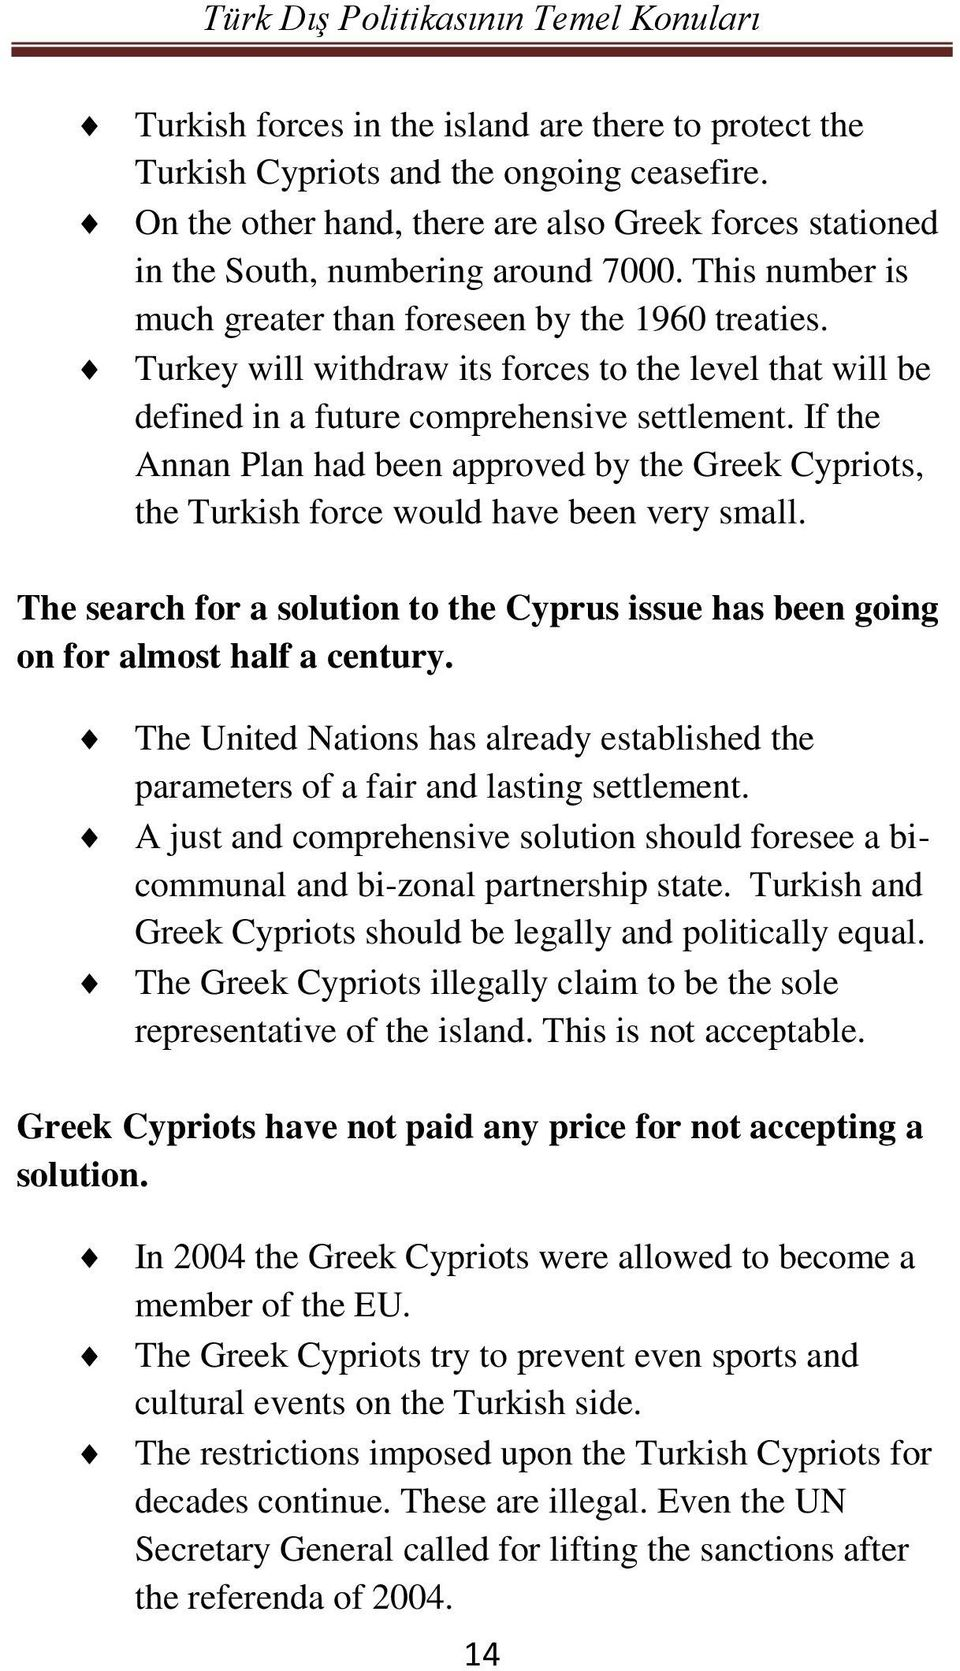 If the Annan Plan had been approved by the Greek Cypriots, the Turkish force would have been very small. The search for a solution to the Cyprus issue has been going on for almost half a century.